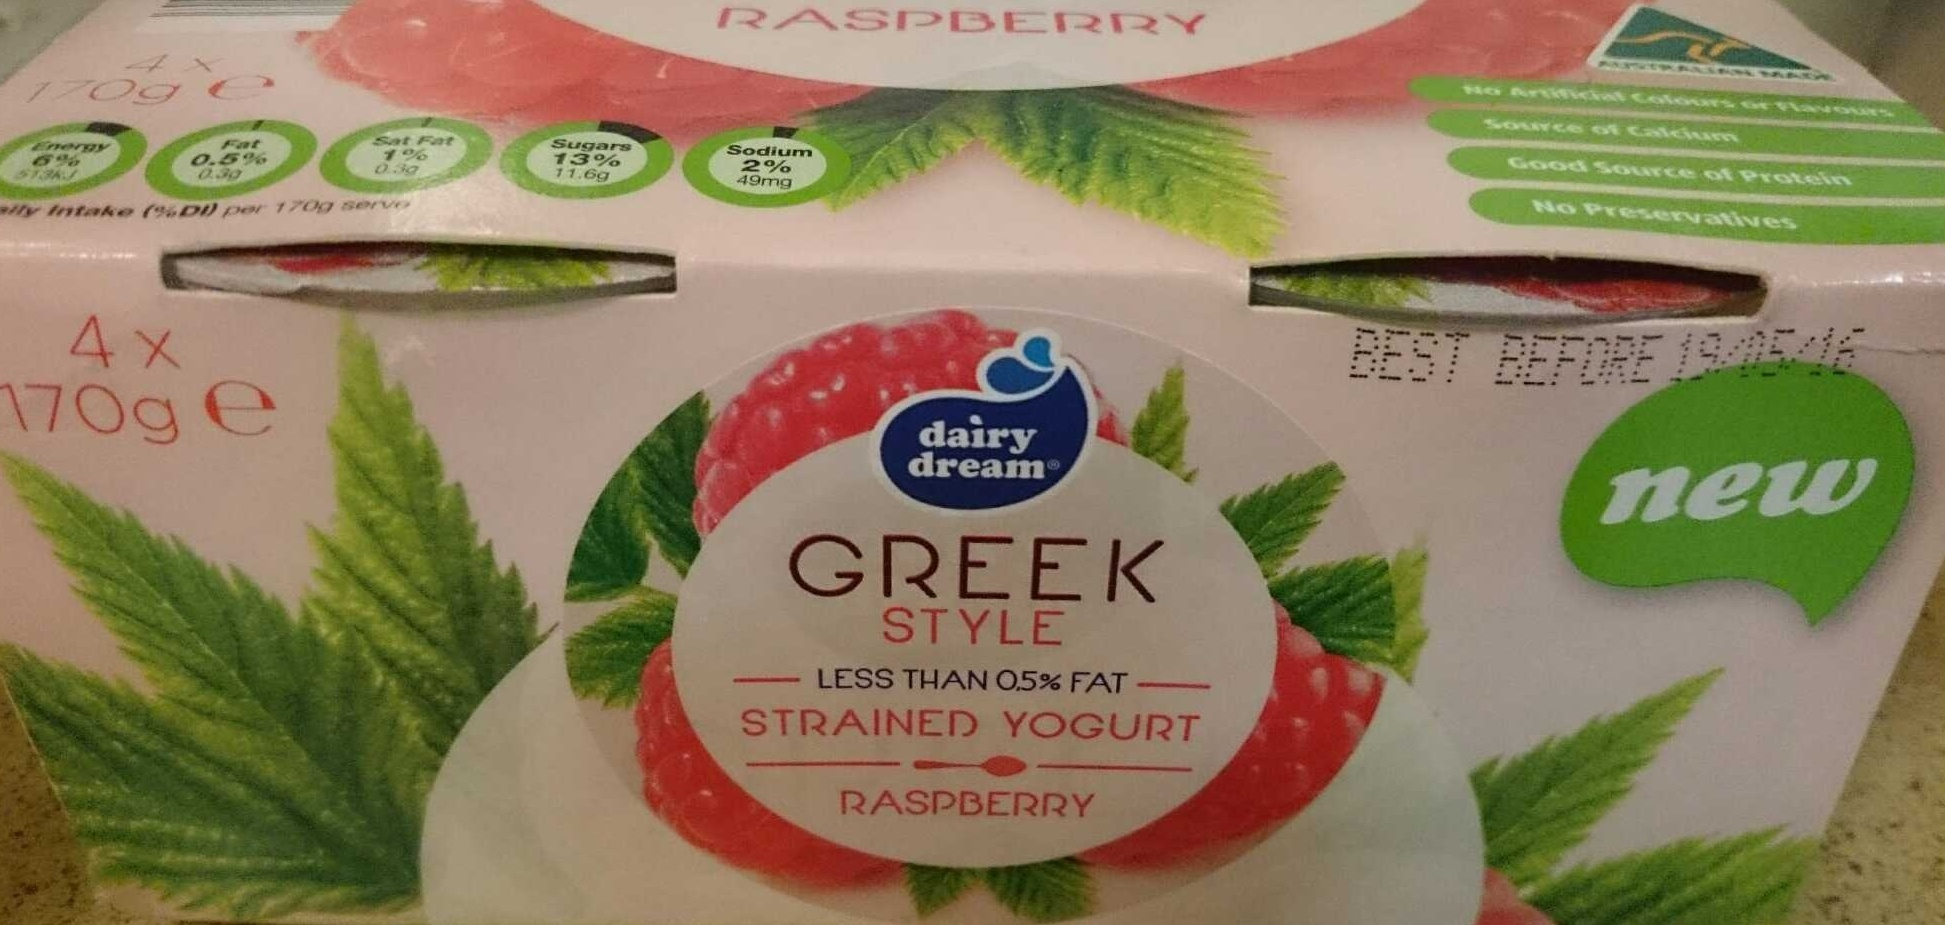 Greek Style Strained Yoghurt - Raspberry - Product